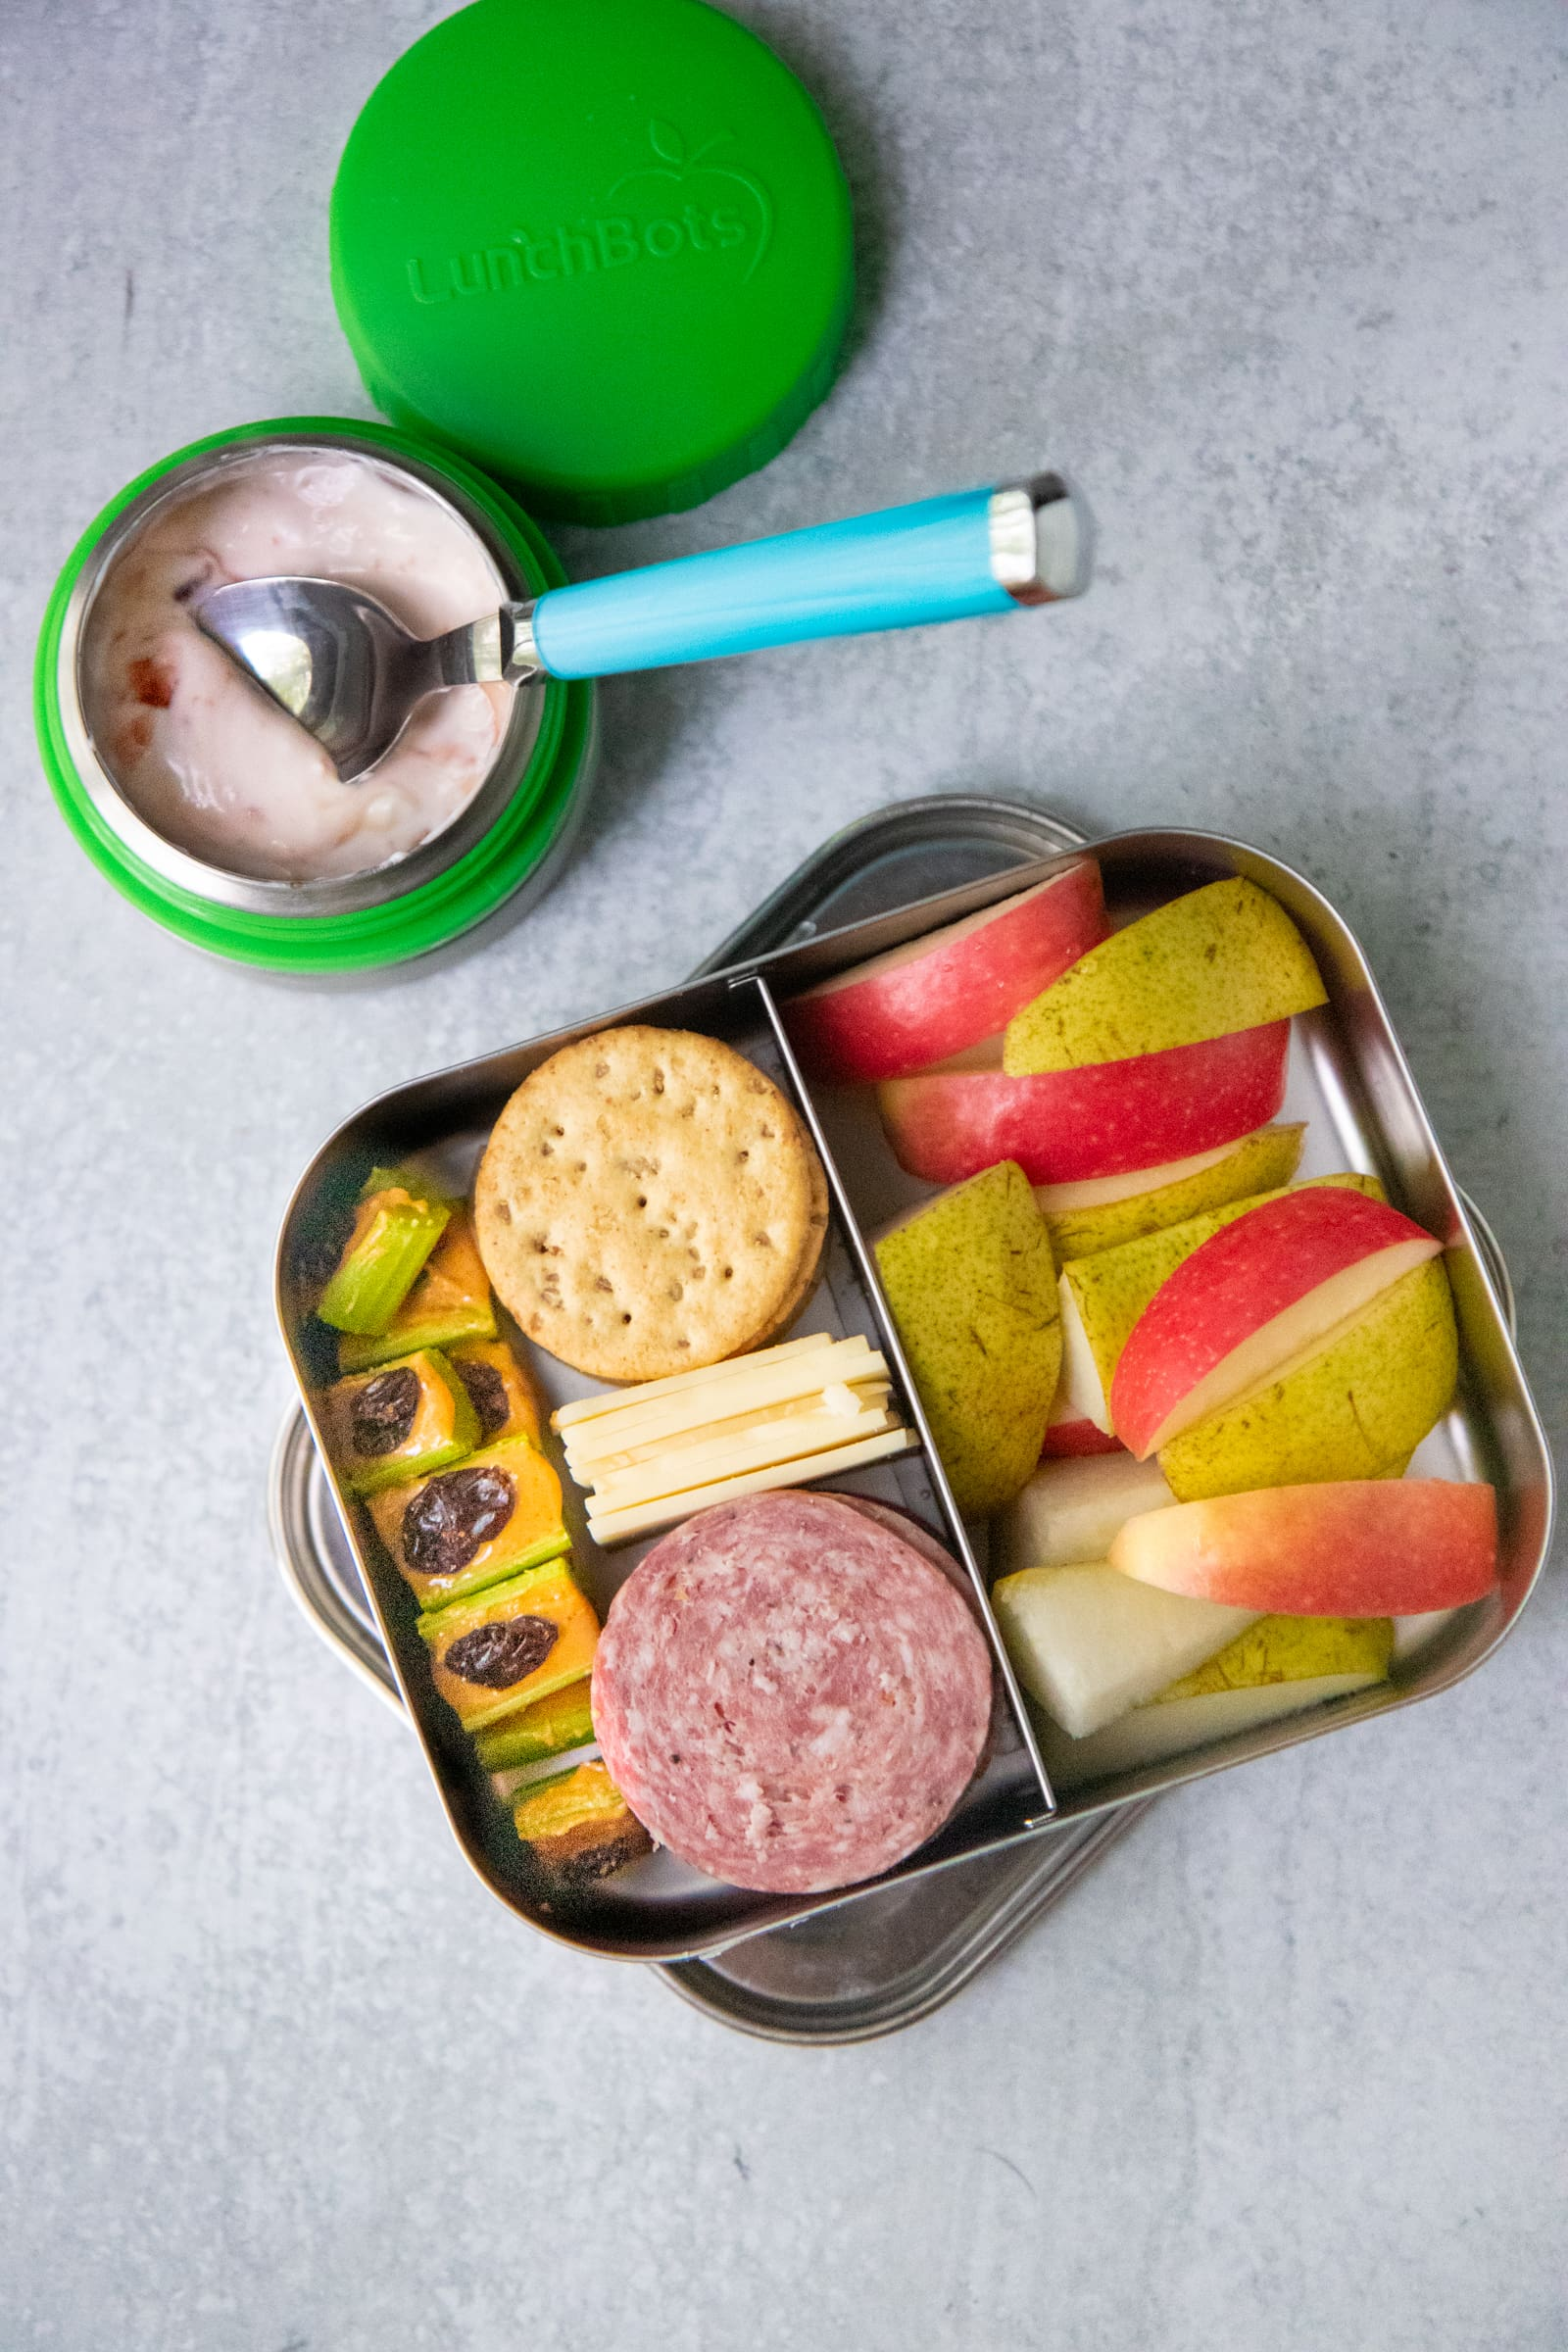 Divided lunch container filled with cheese, crackers, salami, fruit slices, and ants on a log. There is a container of yogurt next to it.